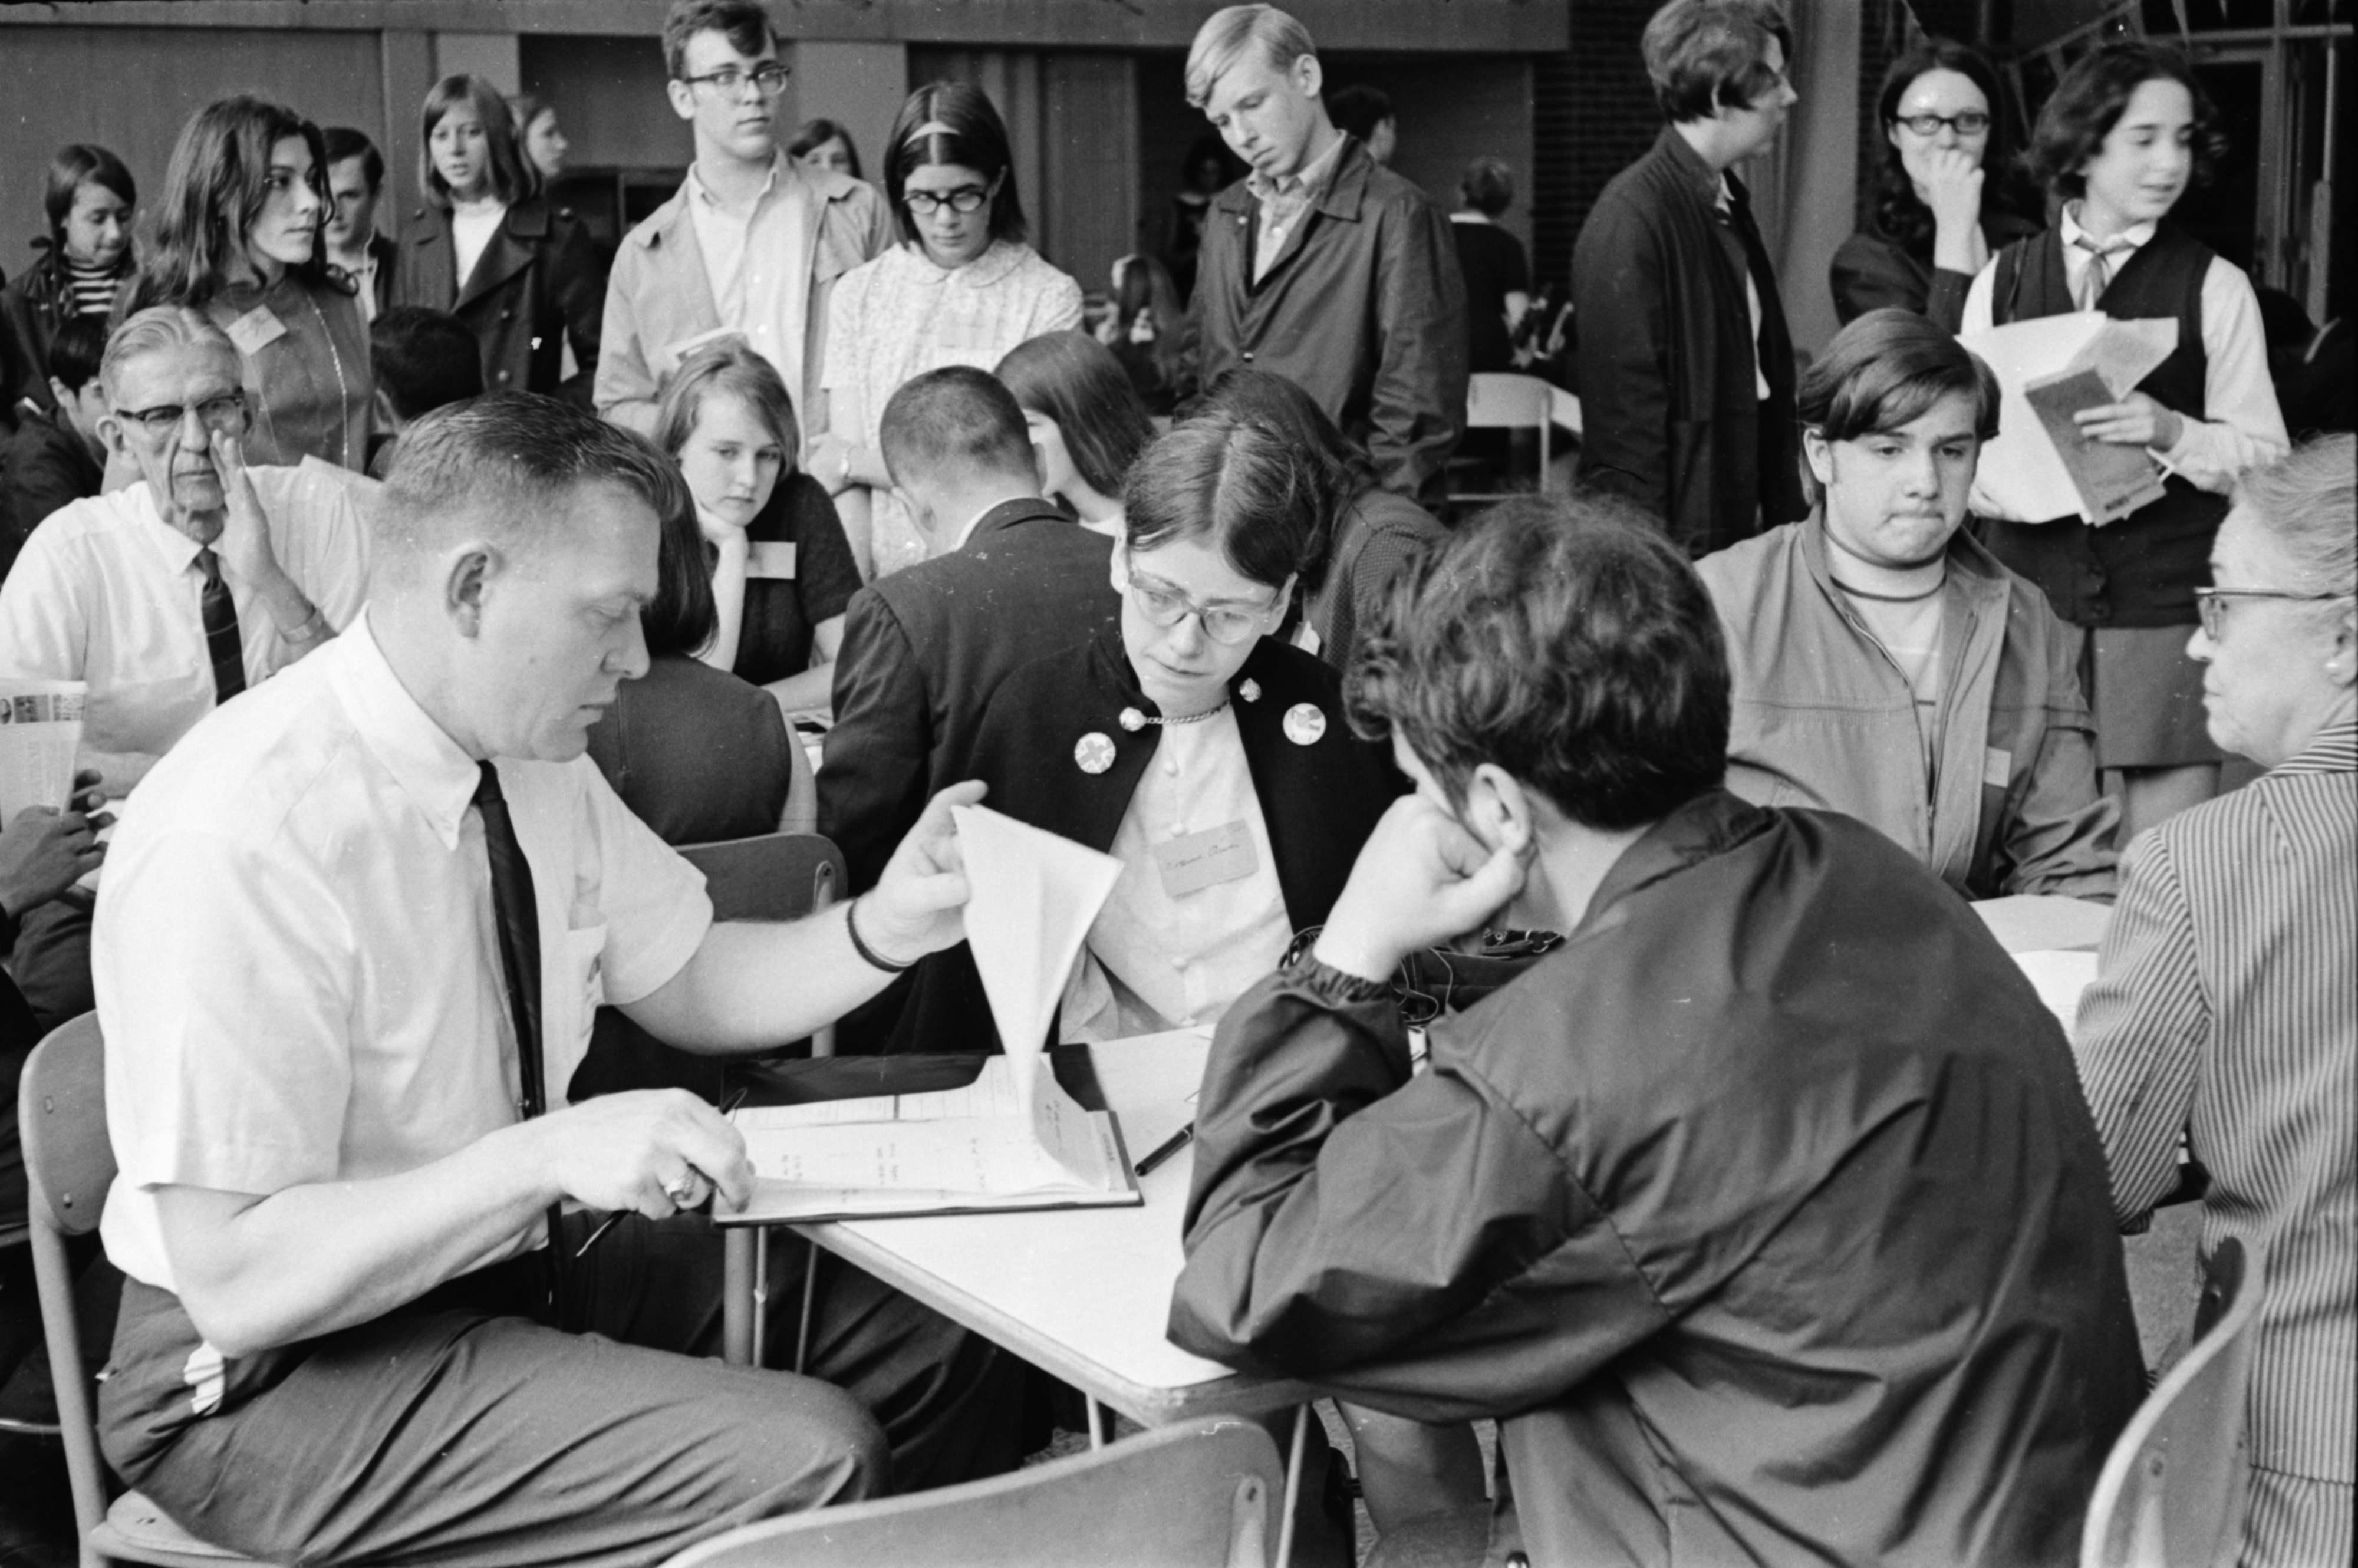 Employment Fair, May 1969 image